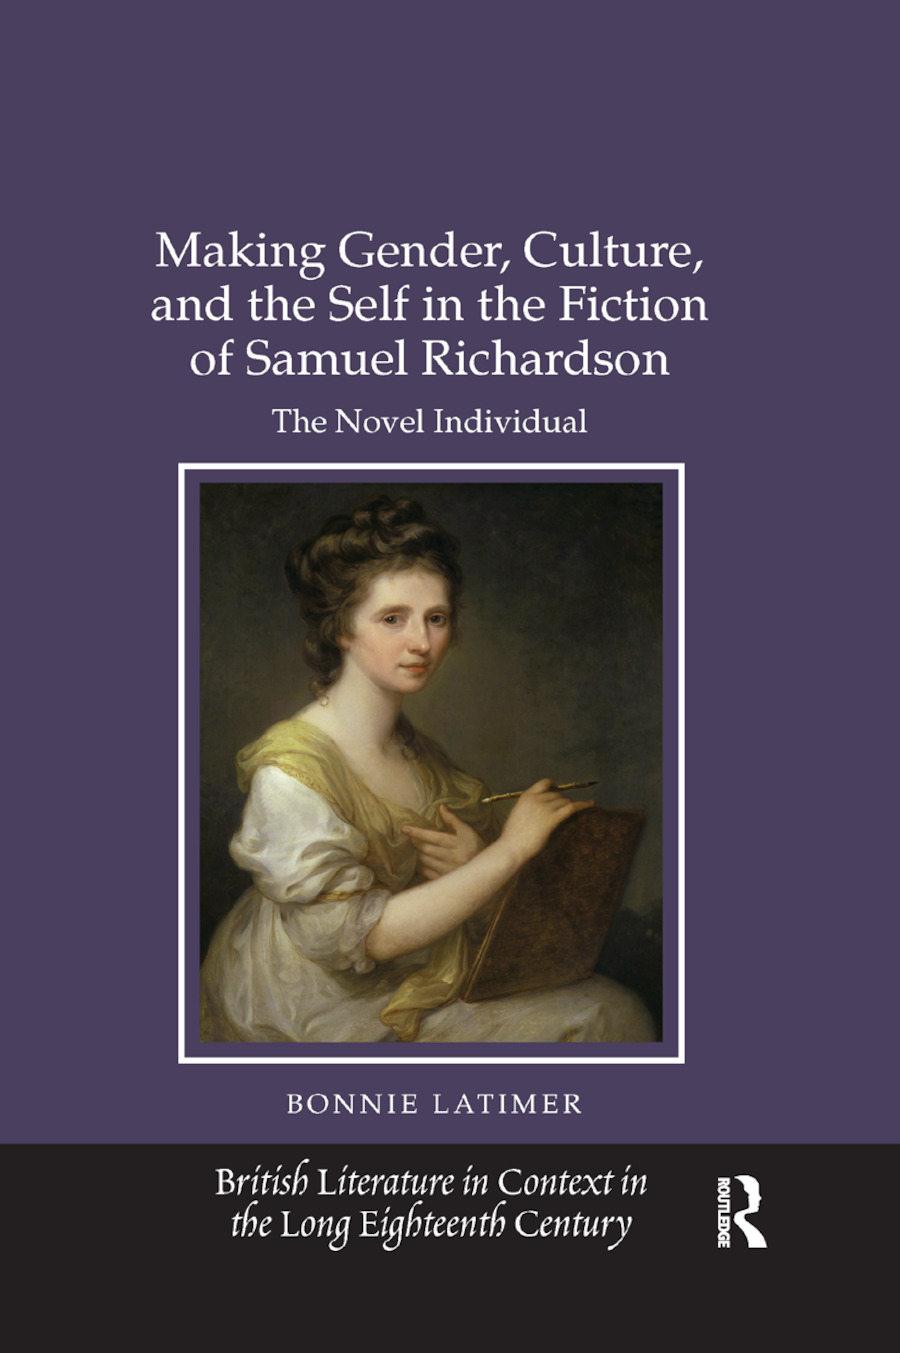 Making Gender, Culture, and the Self in the Fiction of Samuel Richardson: The Novel Individual book cover